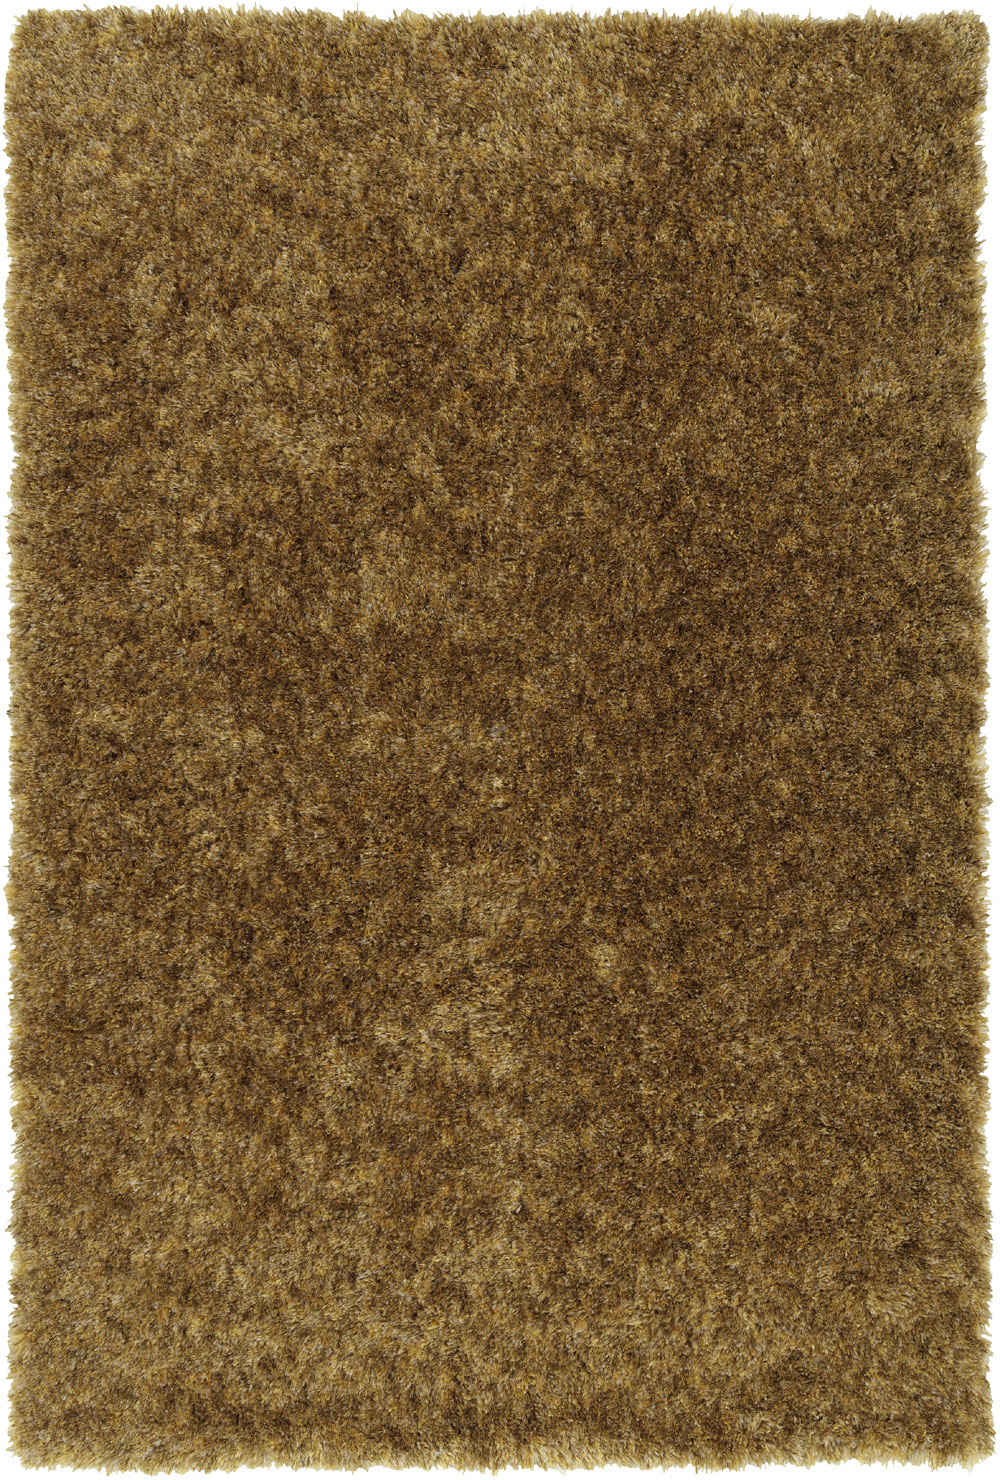 Dalyn Cabot CT1 Gold Rug